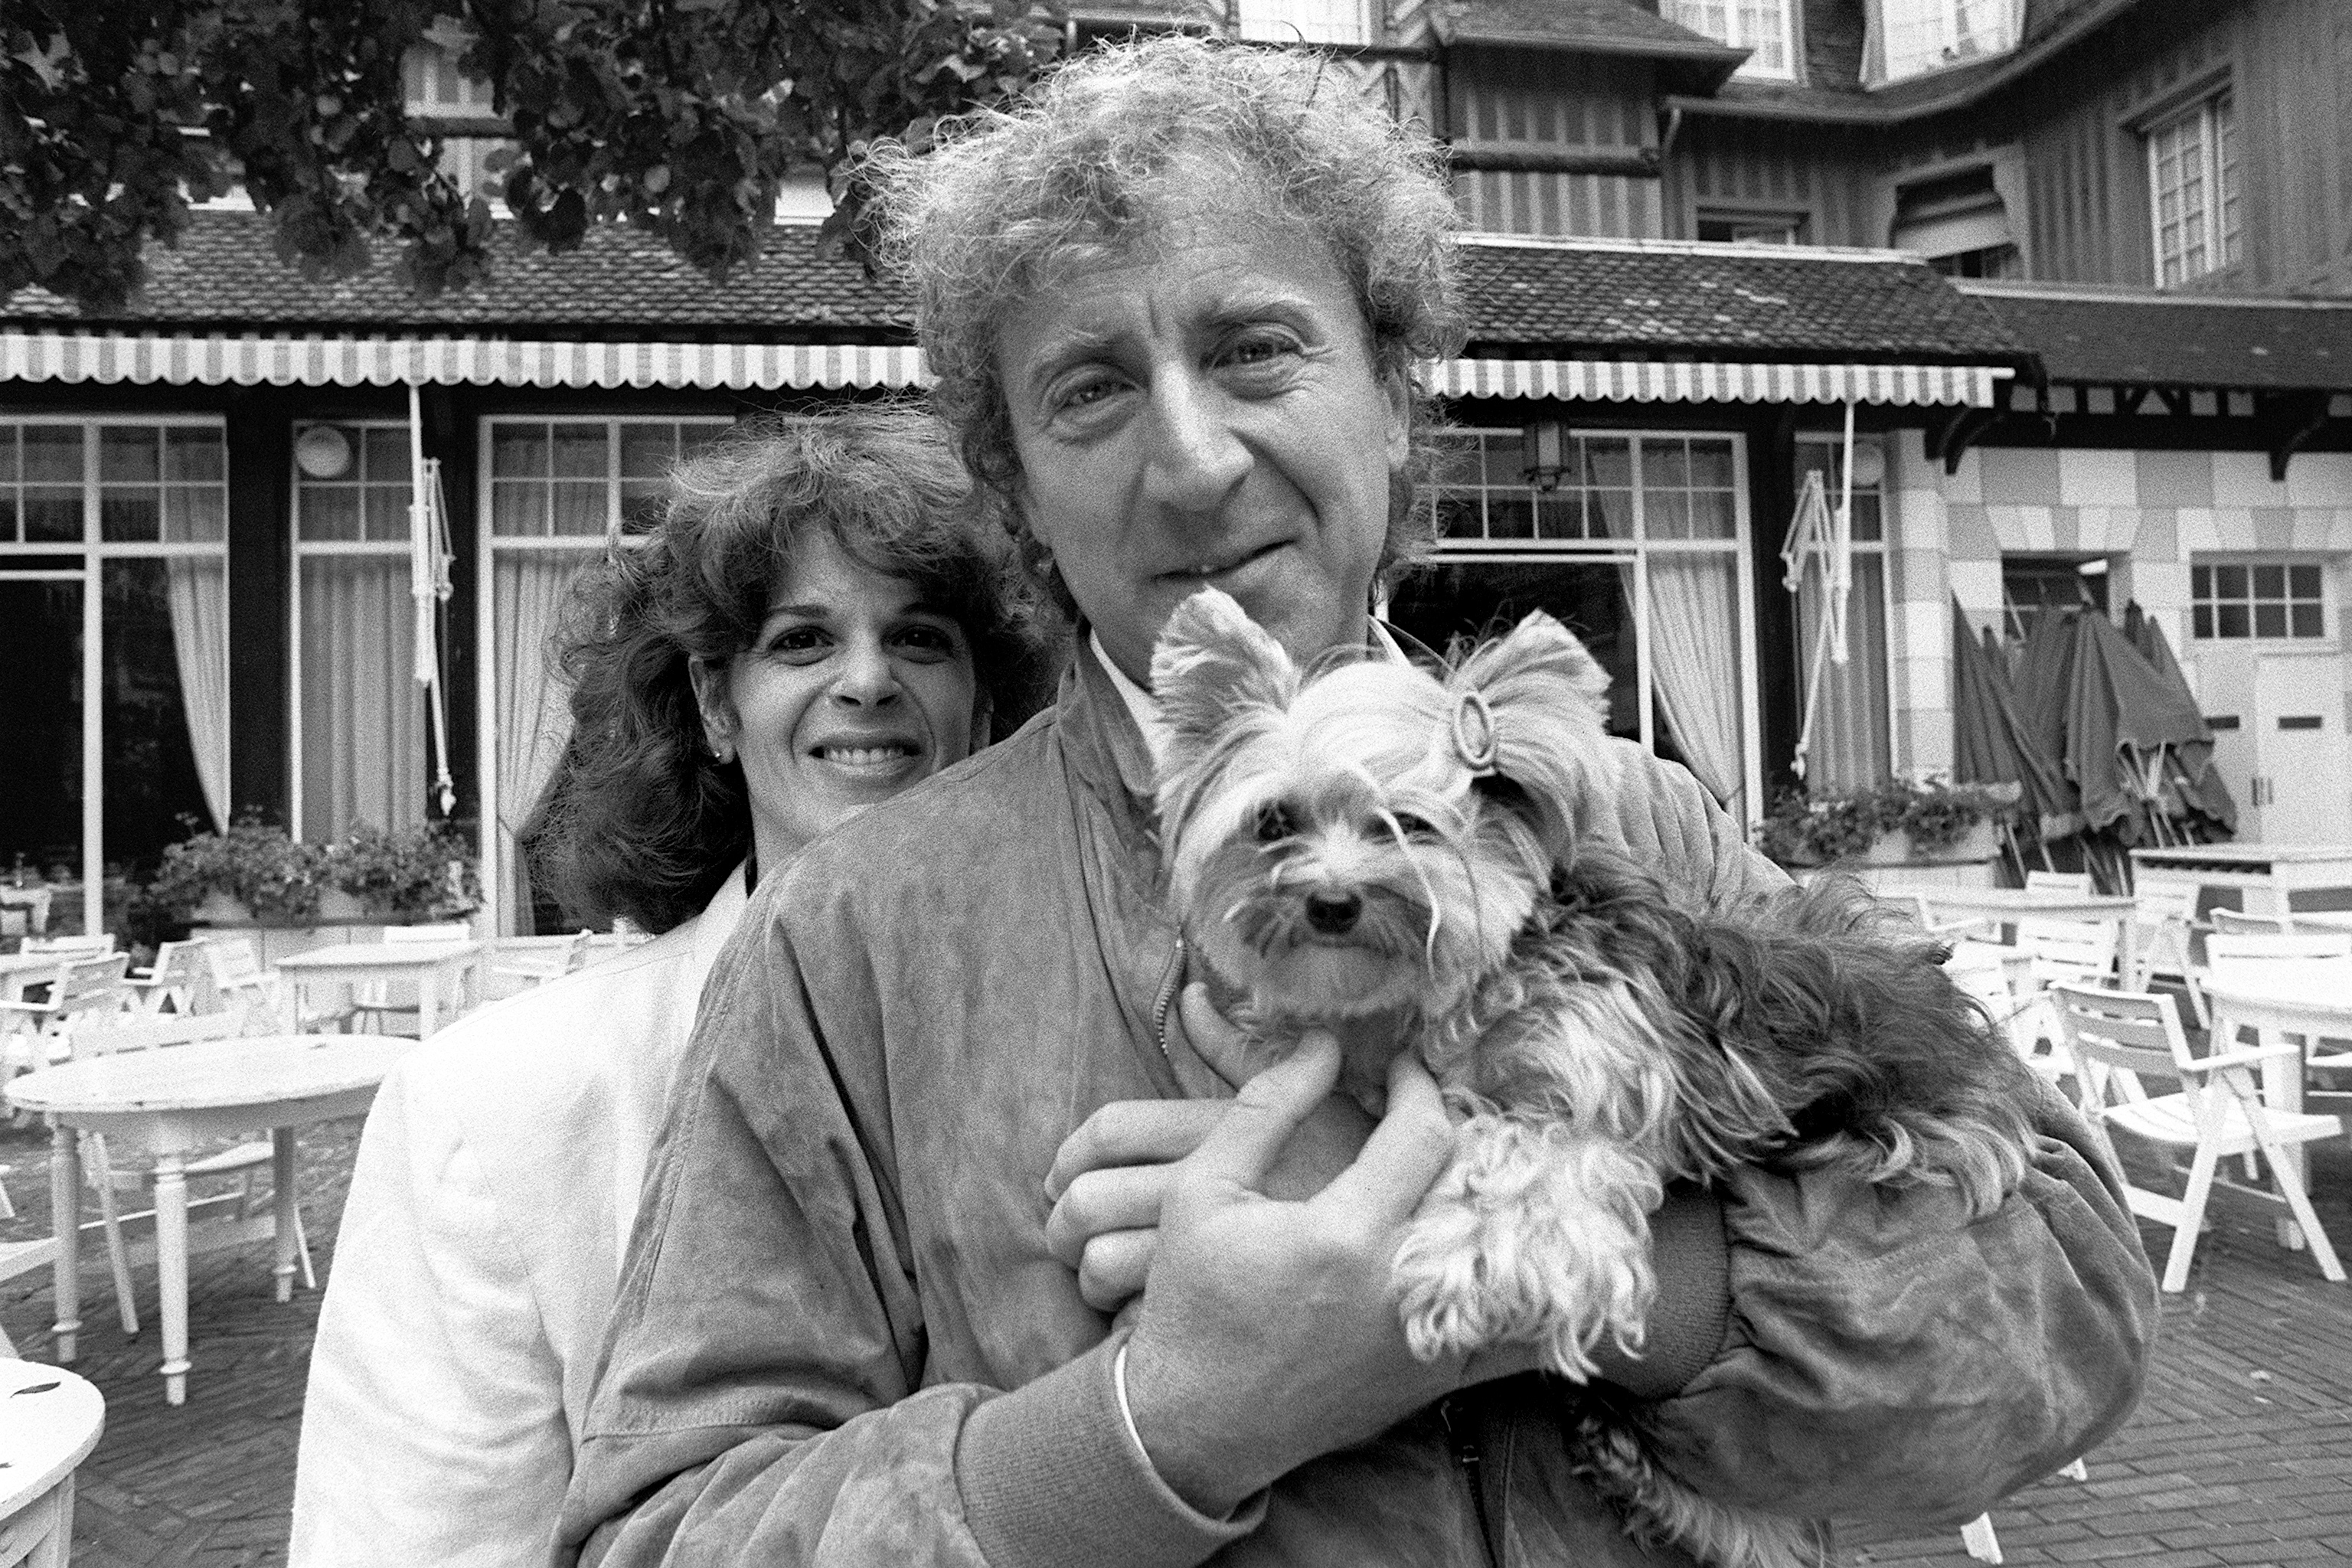 Gene Wilder and Gilda Radner, on Sept. 7, 1984 in Deauville, France.